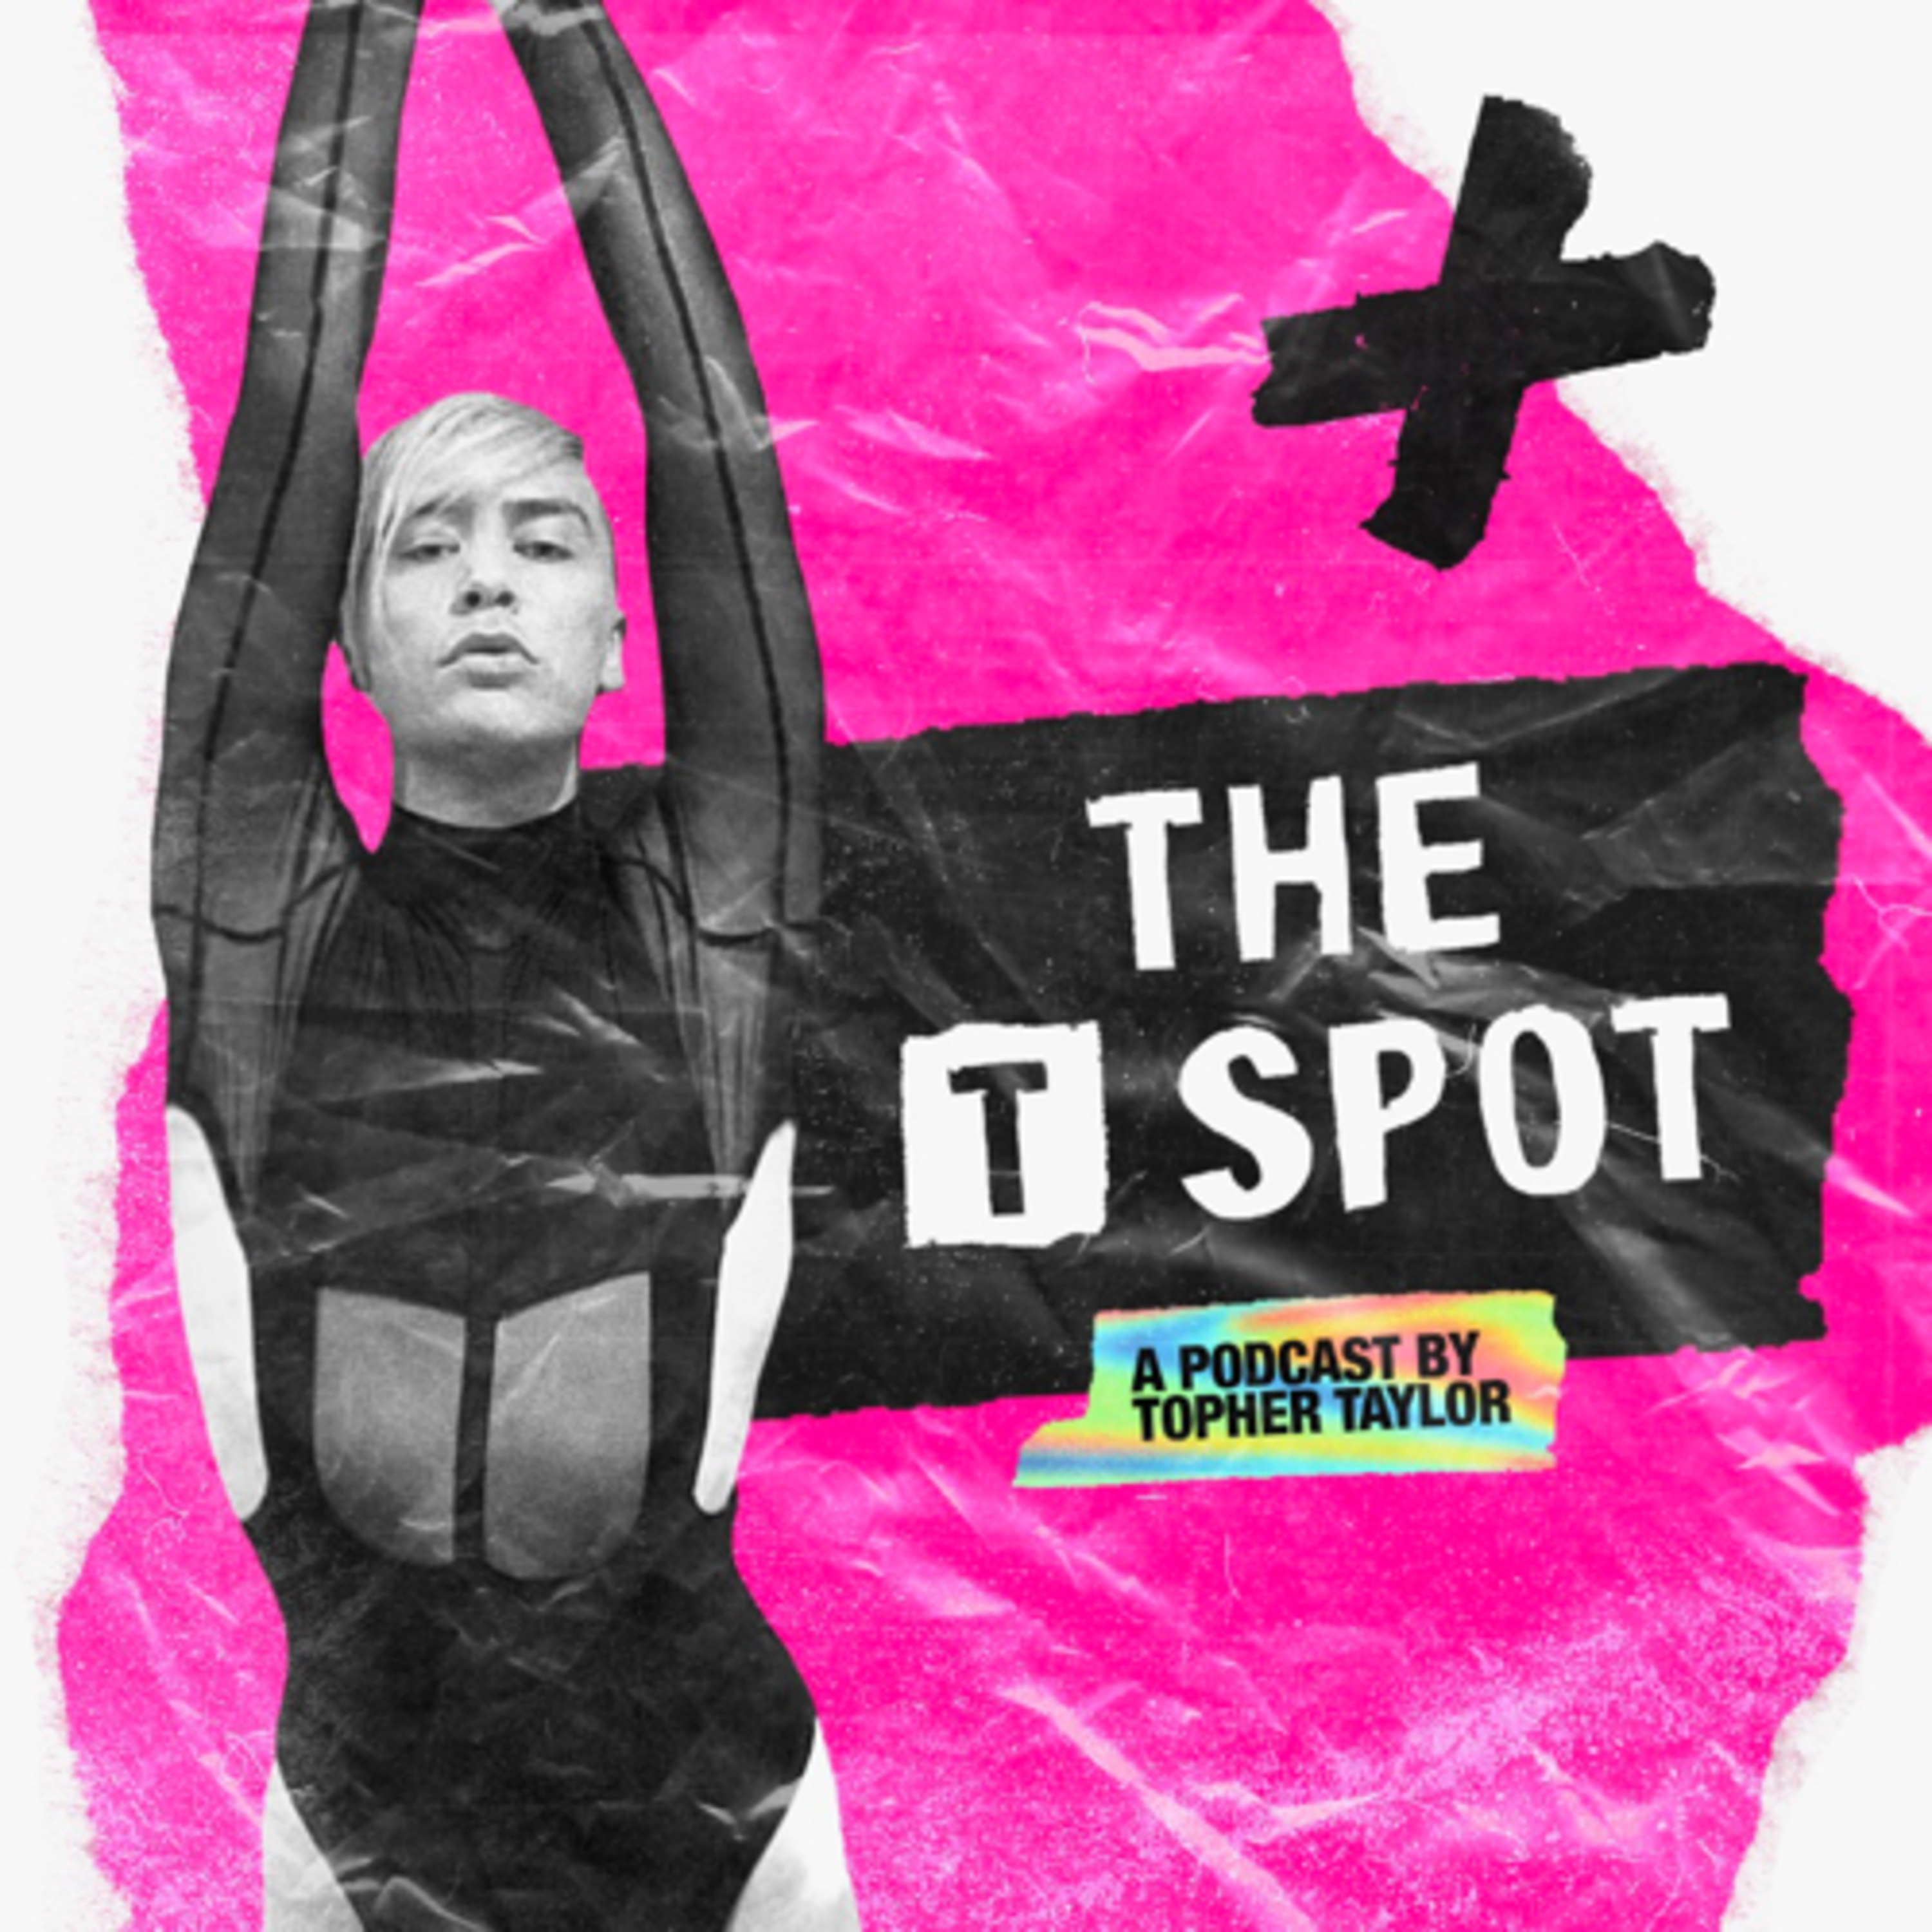 The T SPOT with Topher Taylor